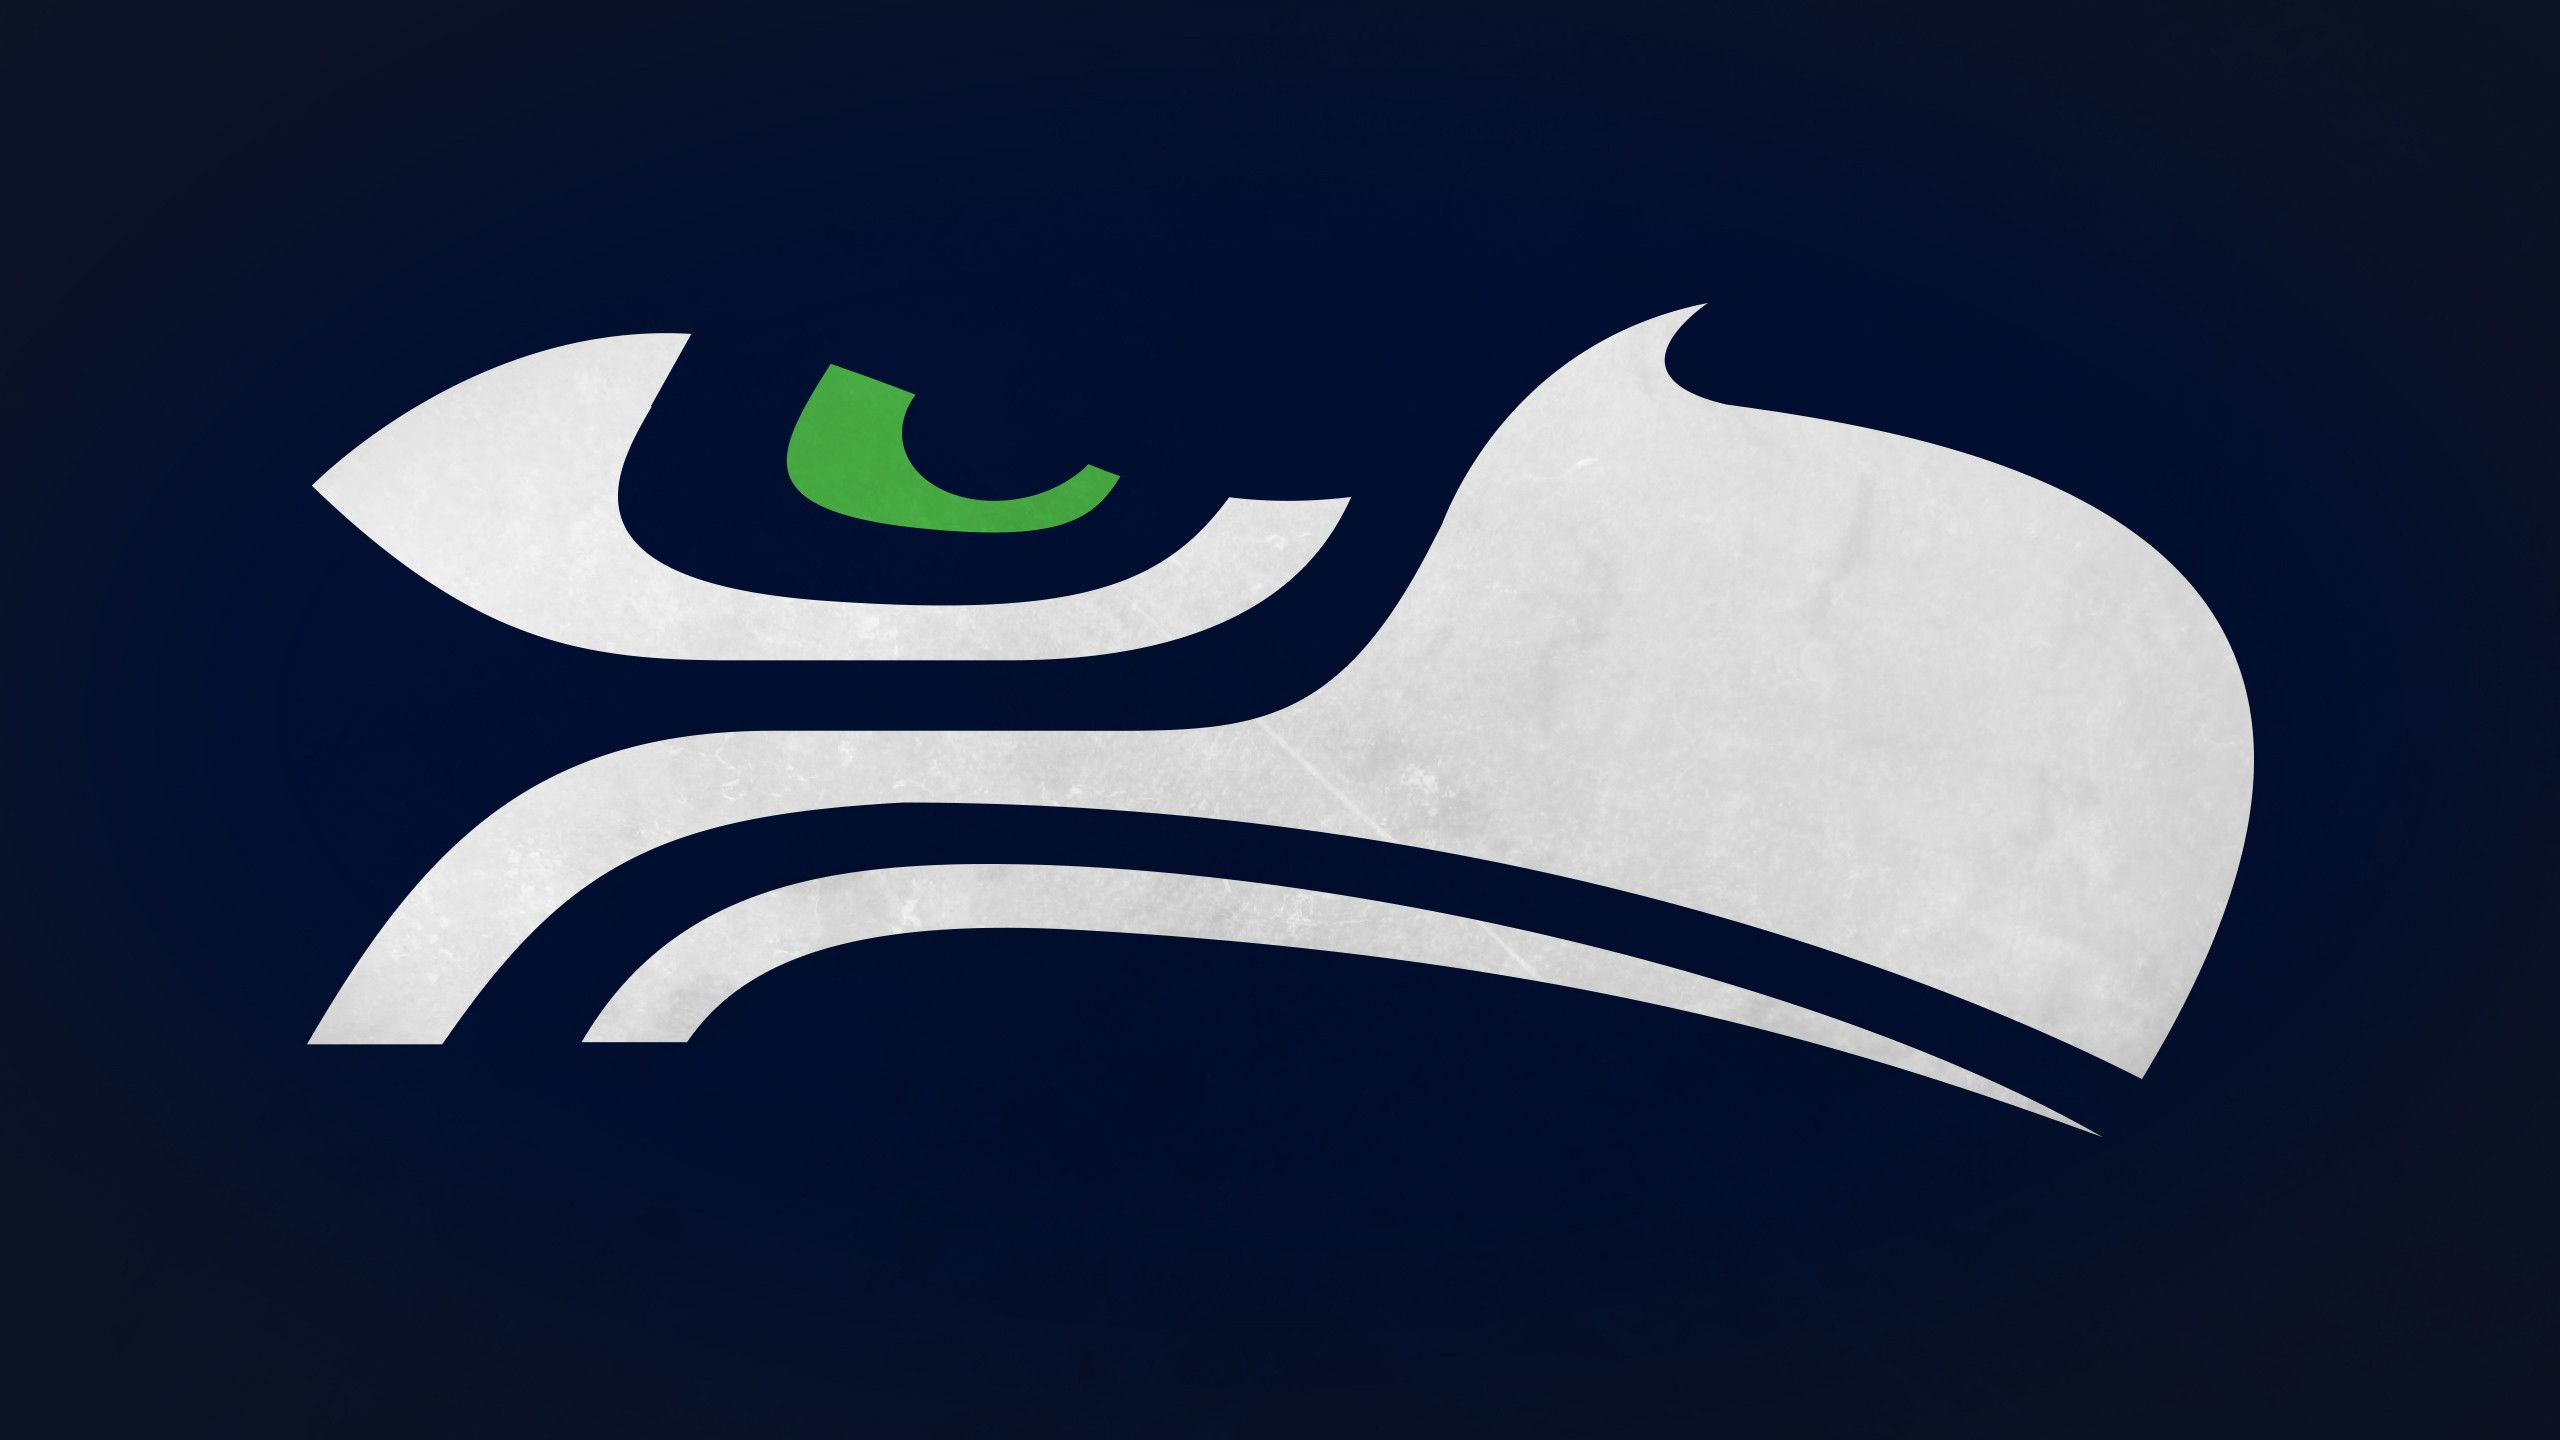 Image for Seattle Seahawks Logo Vector Seattle seahawks logo